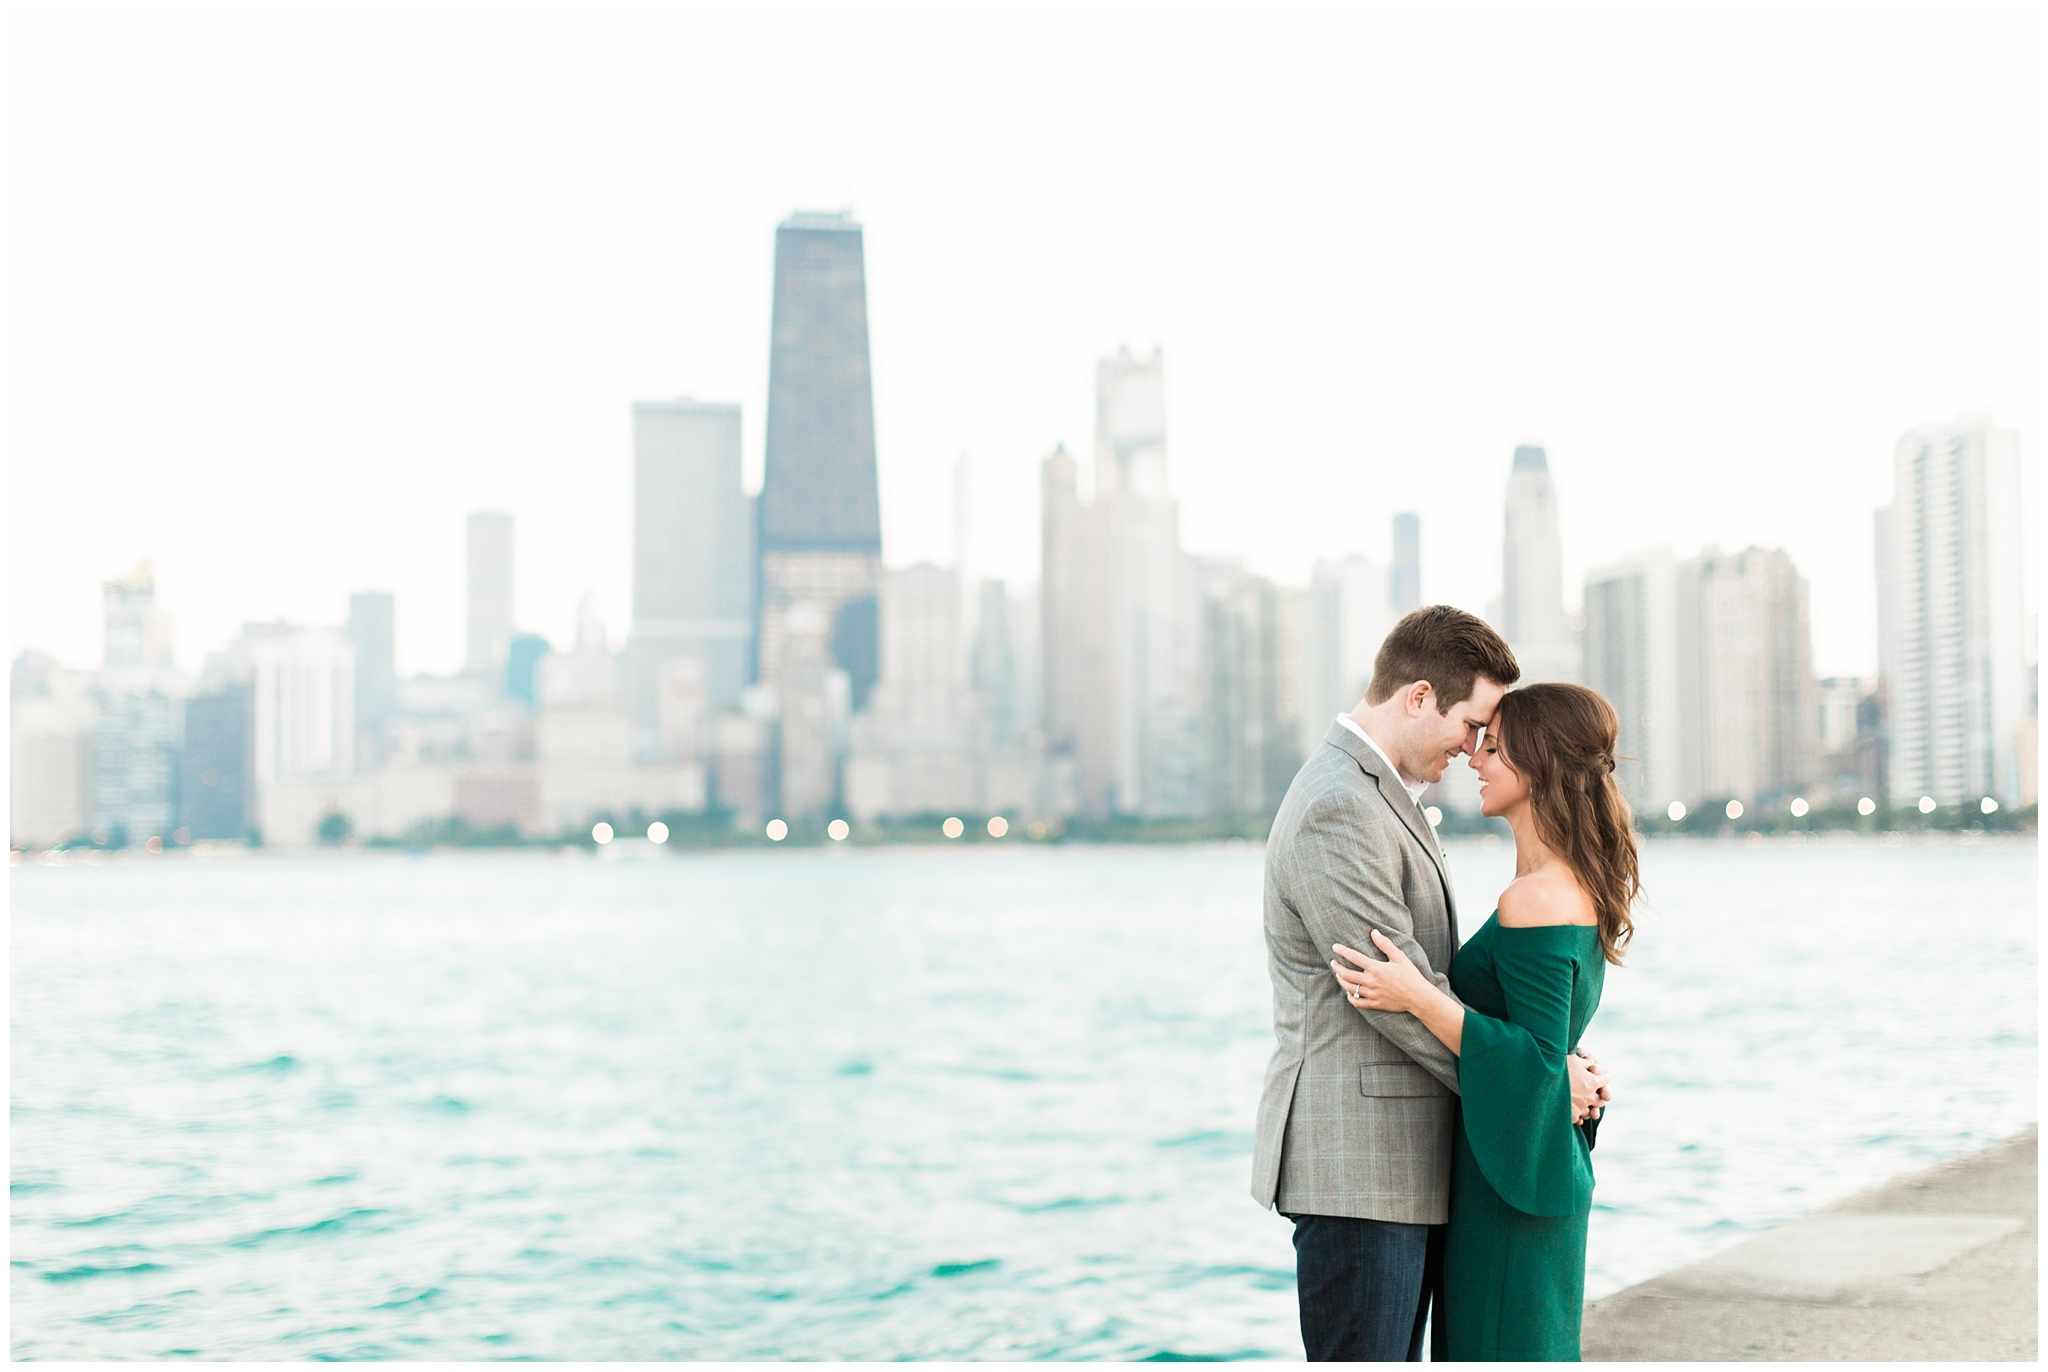 chicagoengagementsession_northavebeachengagementsession_northavebeach_northavenuebeach_northavenuebeachengagementsession_chicagoriverwalk_chicagoriverwalkengagementsession_0012.jpg